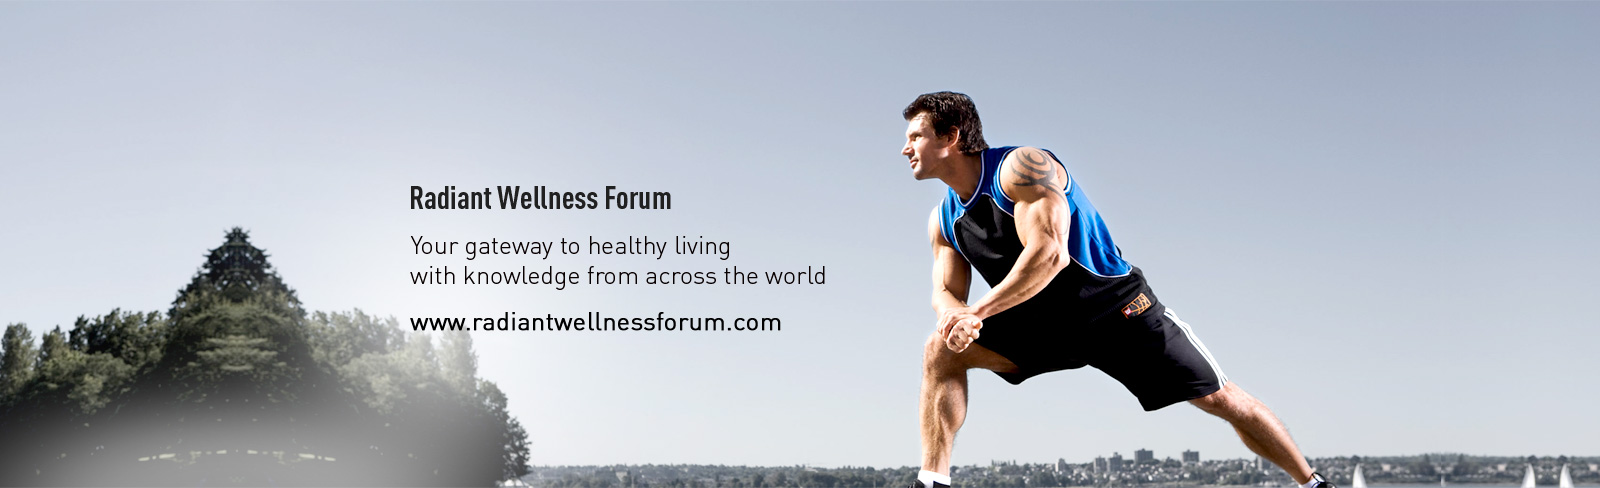 radiant-wellness-forum